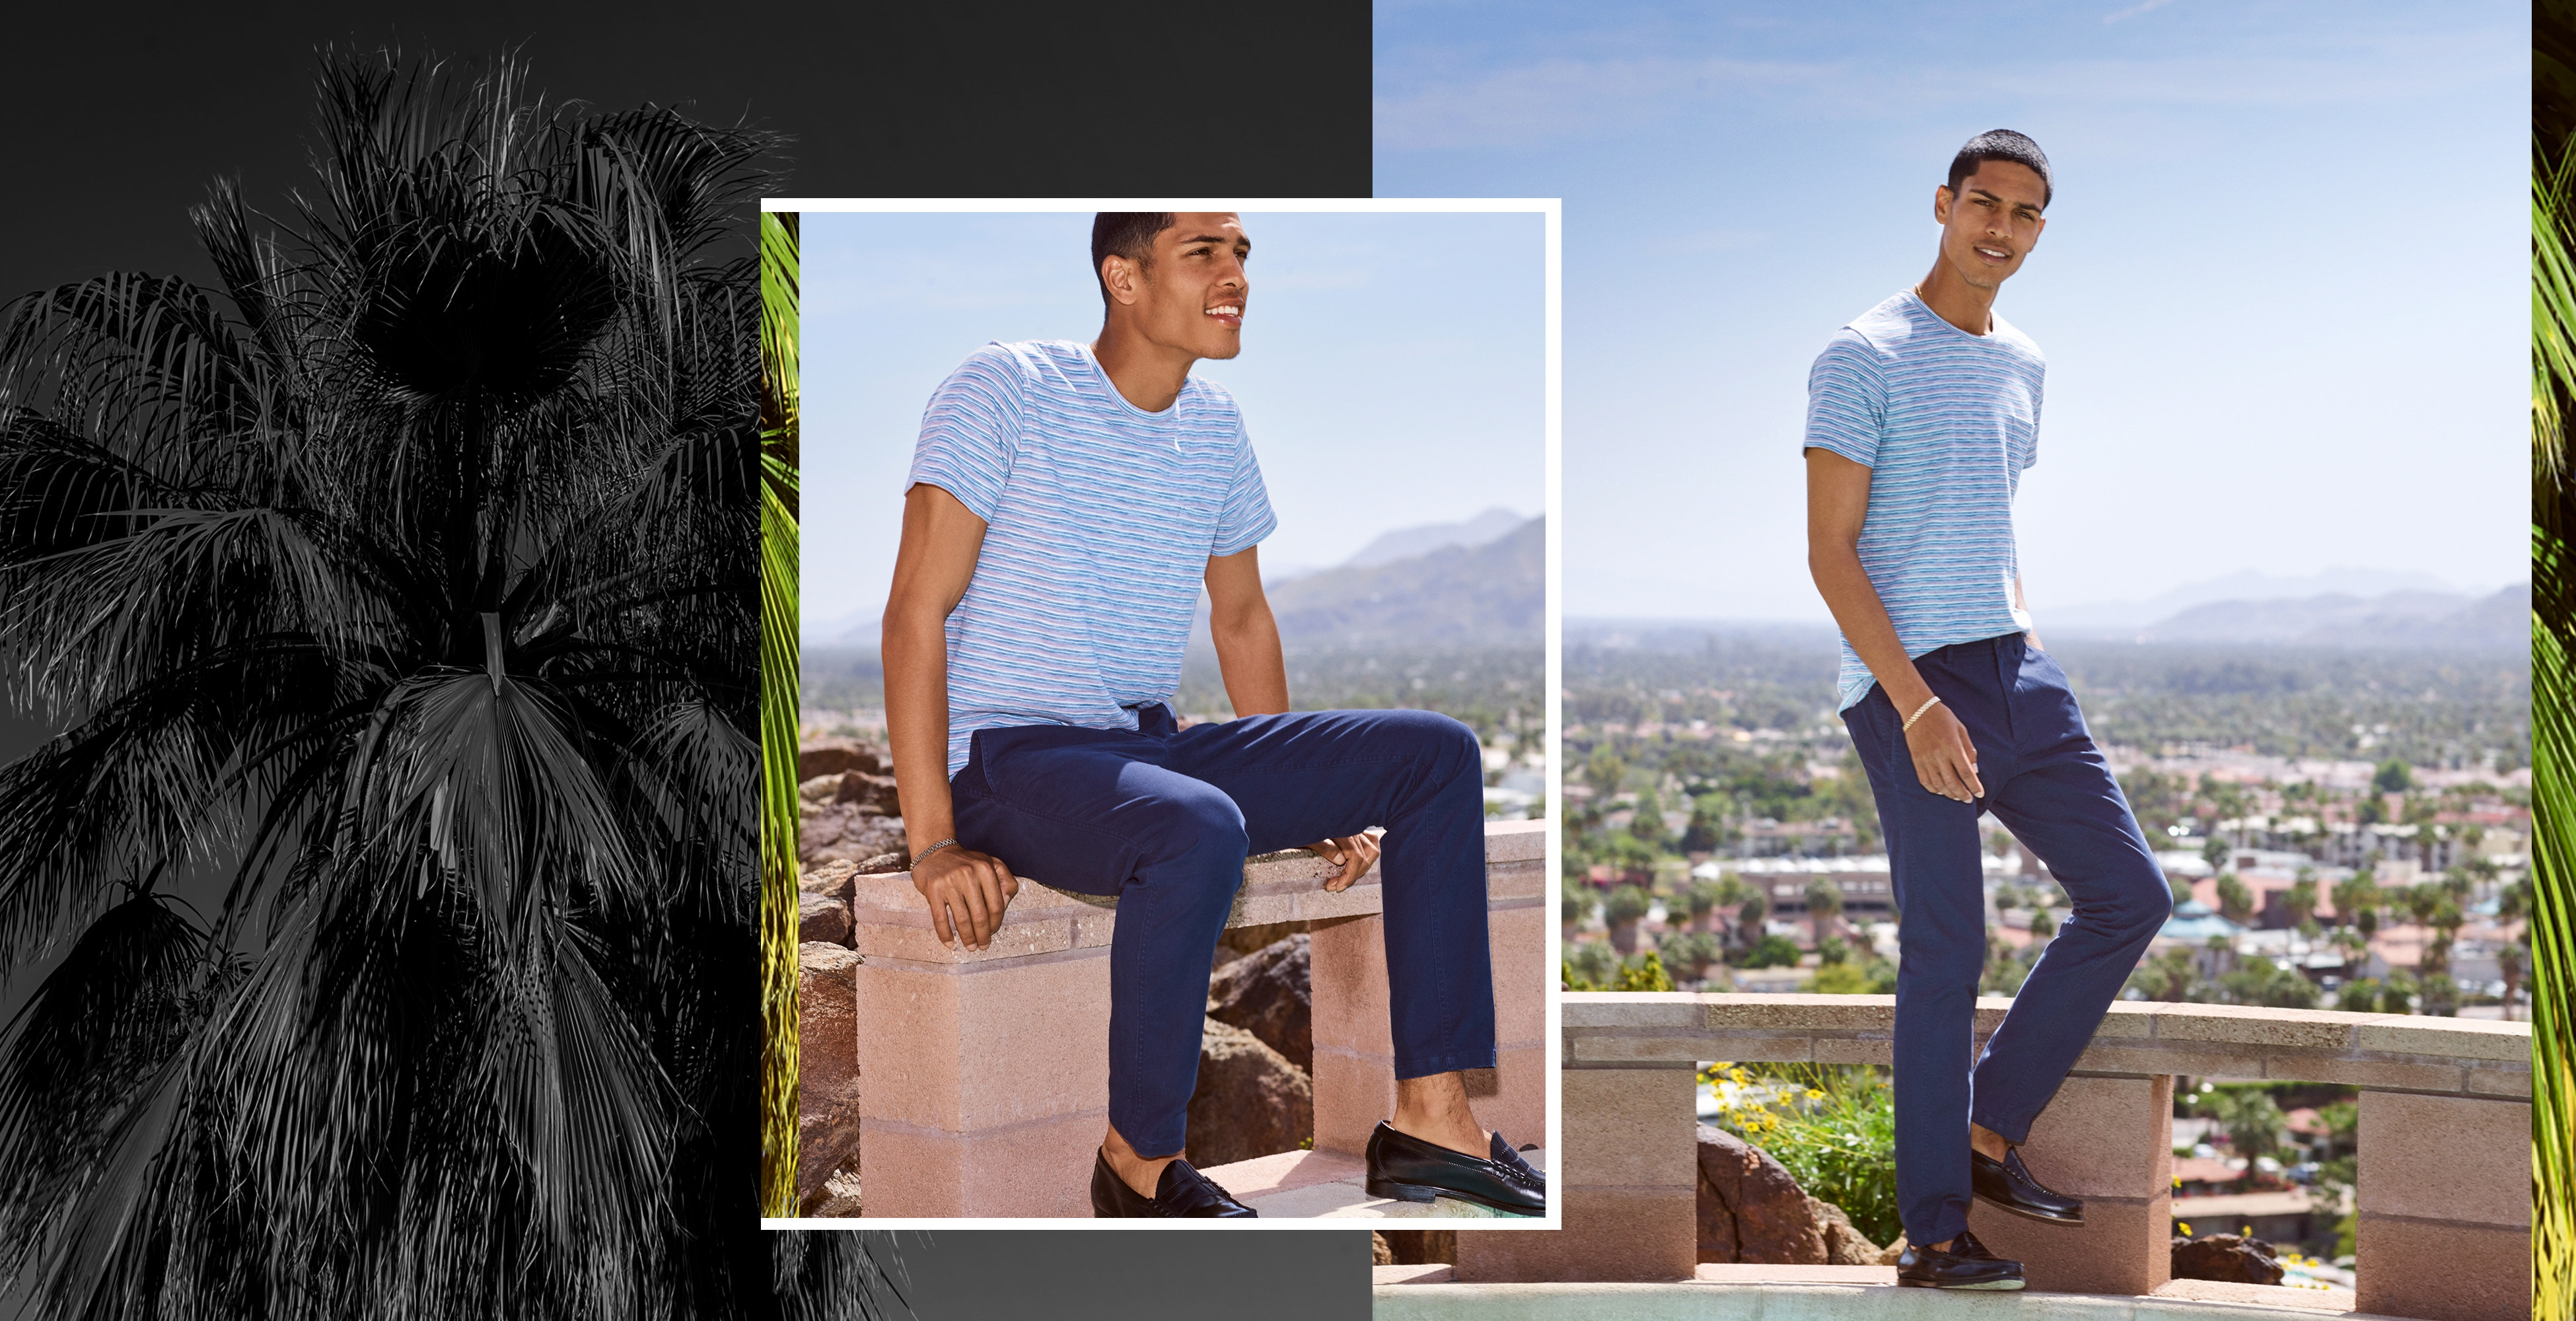 Meet your weekend chinos. Casual, comfortable & up for whatever.